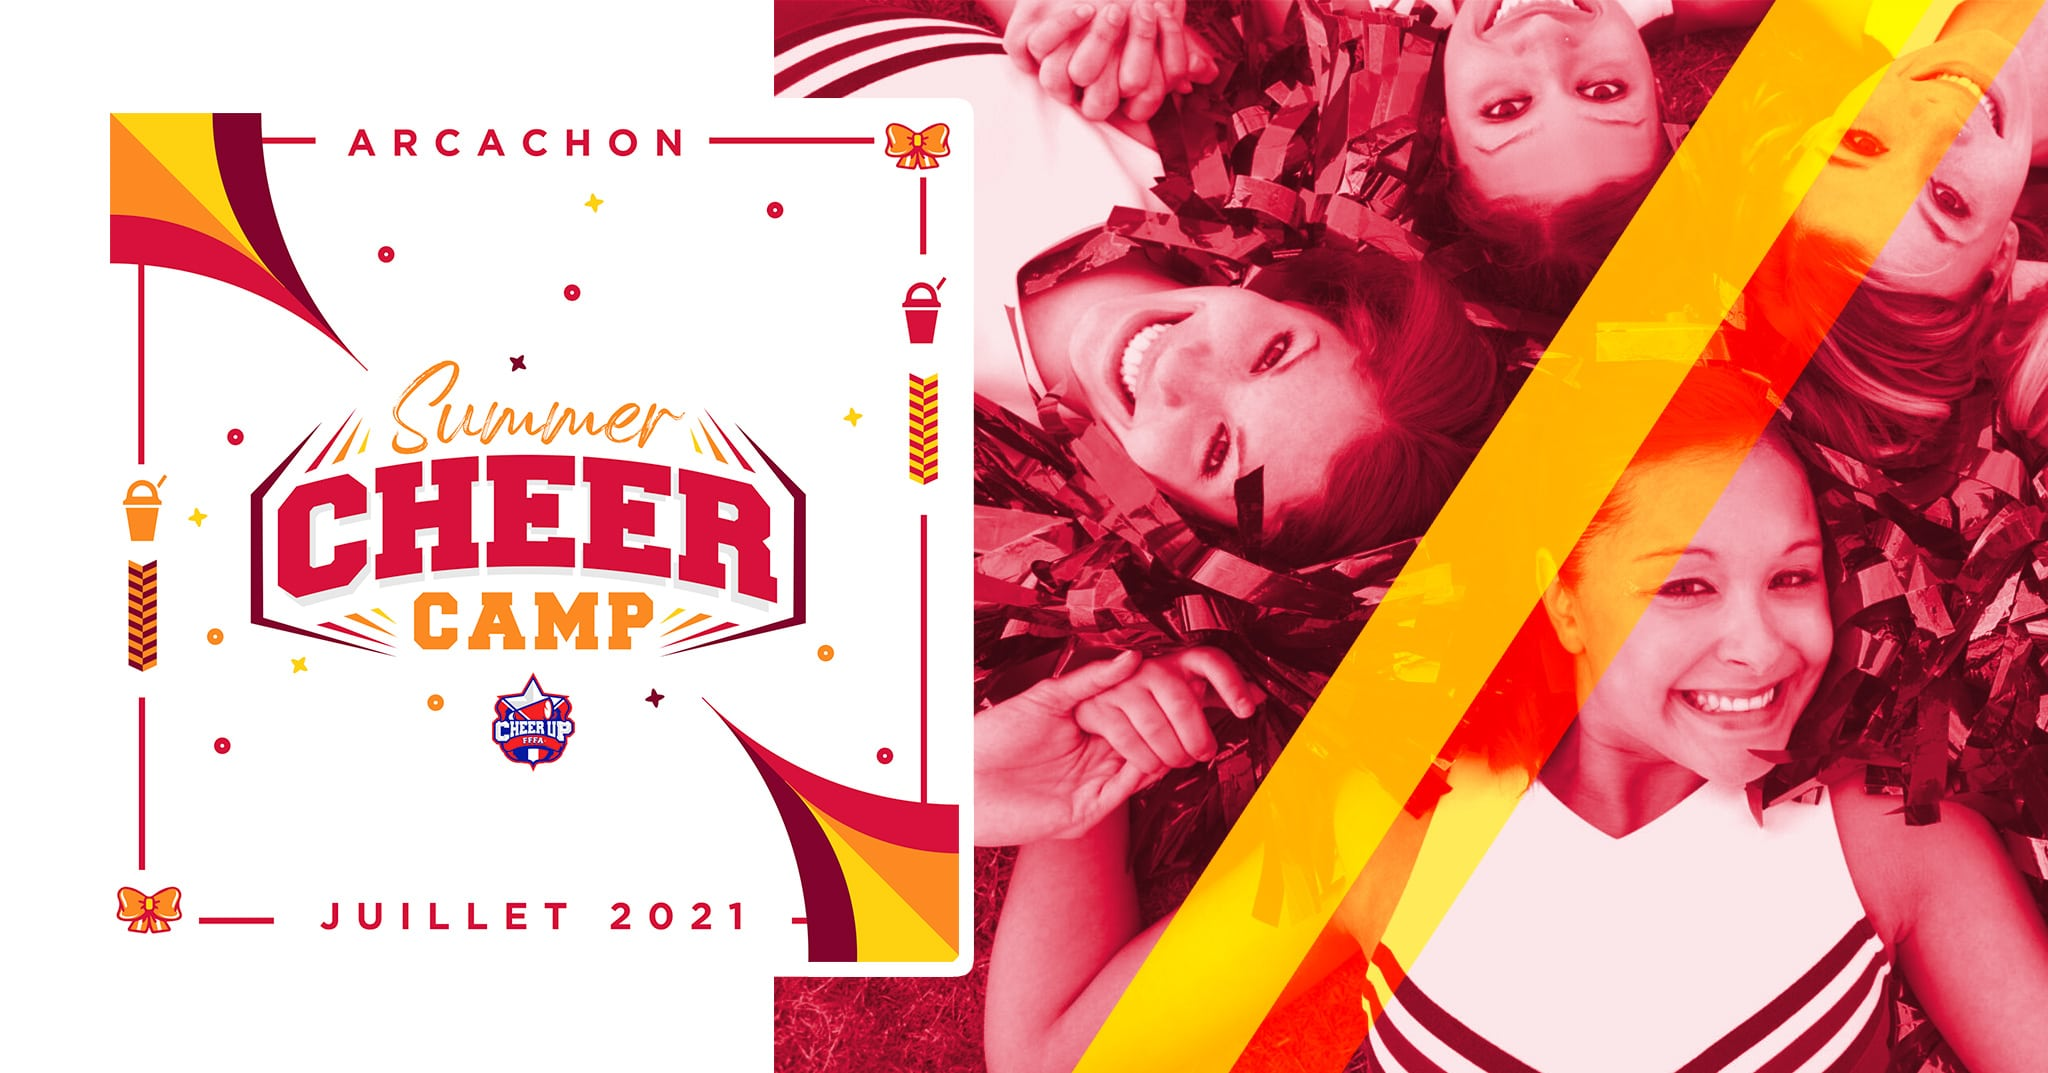 SUMMER CHEER CAMP 2021 | LANCEMENT DES PRE-INSCRIPTIONS